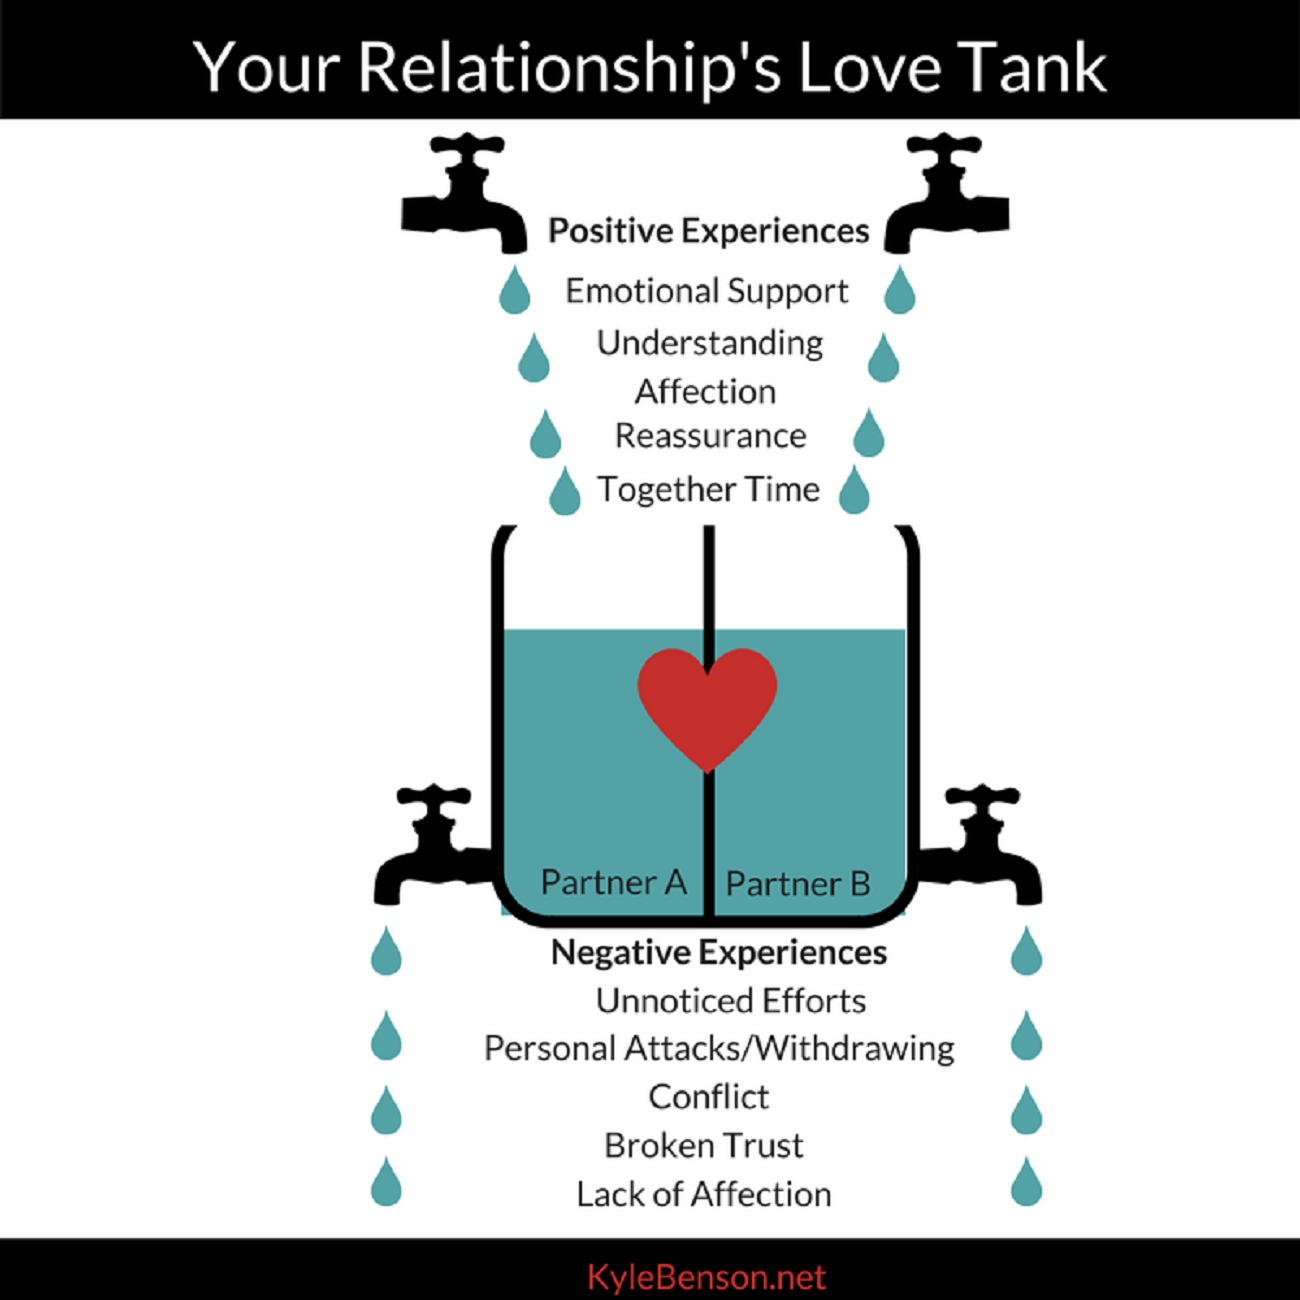 How to Make a Relationship Last: The Love Tank Theory